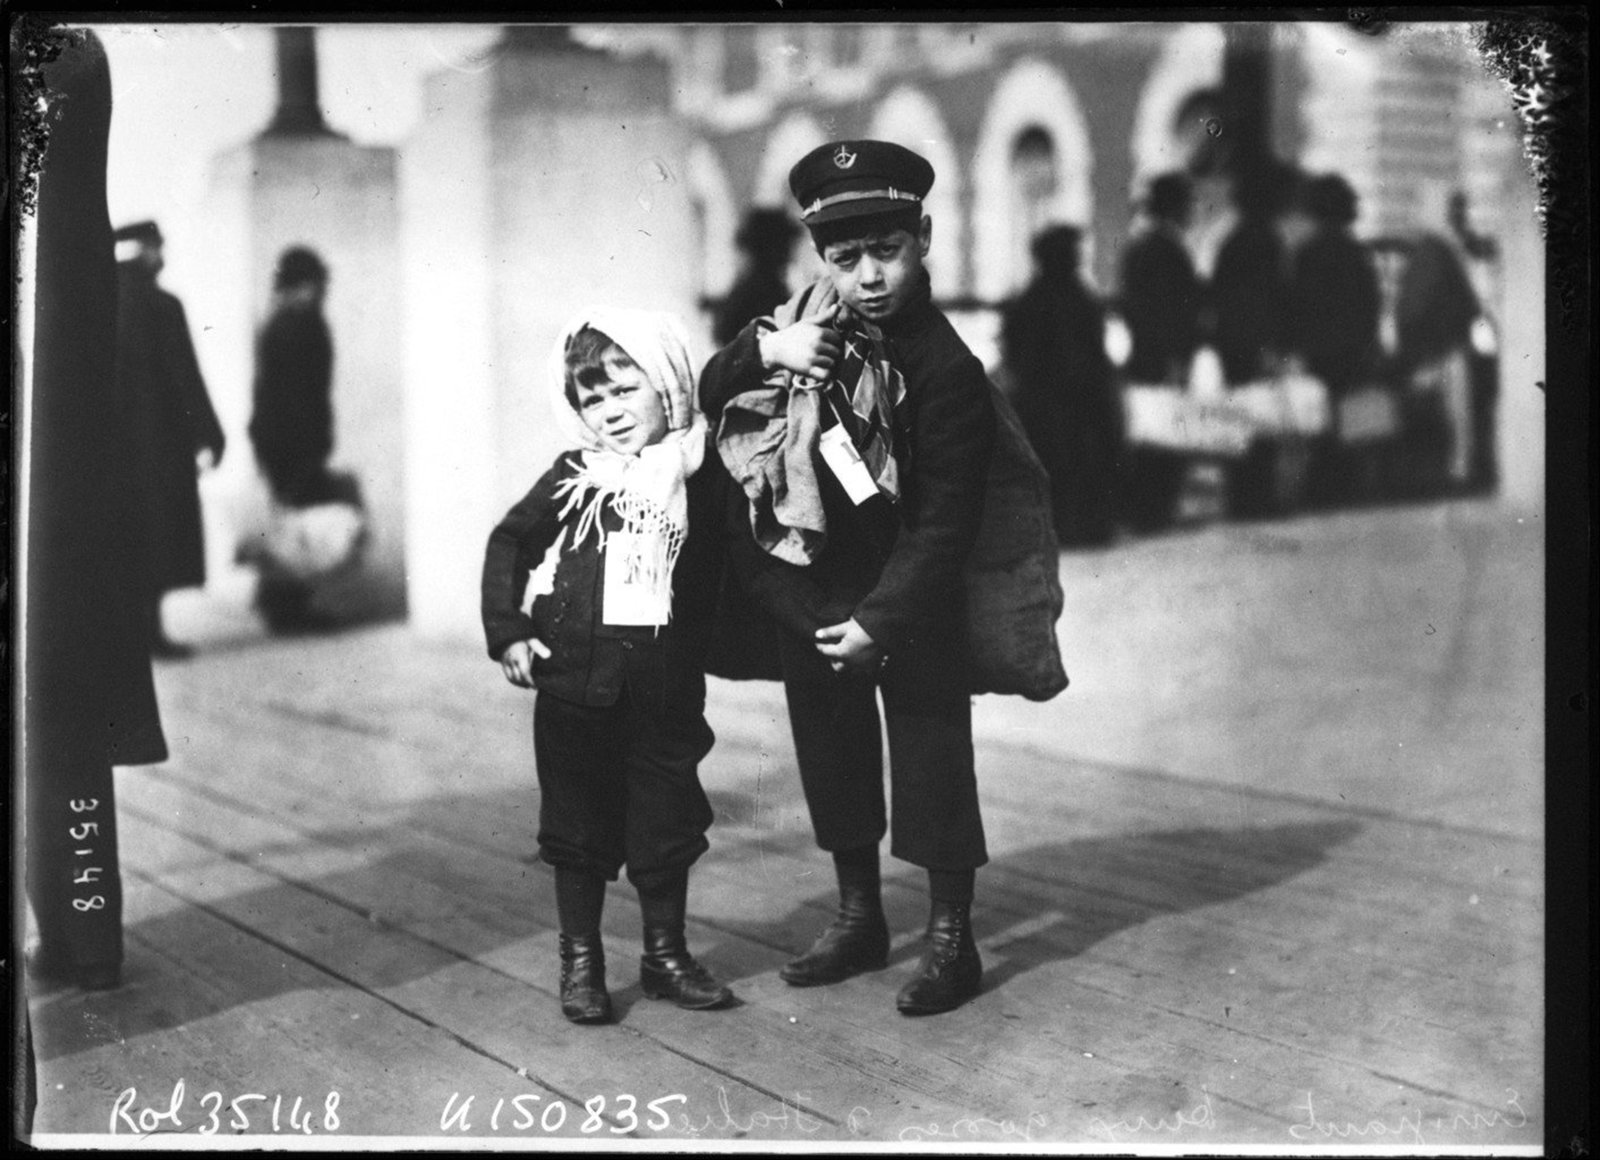 Emigrants [sur Ellis Island], deux gosses d'Italie. (Emigrants [at Ellis Island], two Italian kids), Agence Rol. Agence photographique, Référence bibliographique : Rol, 35148 1913, Public Domain Mark